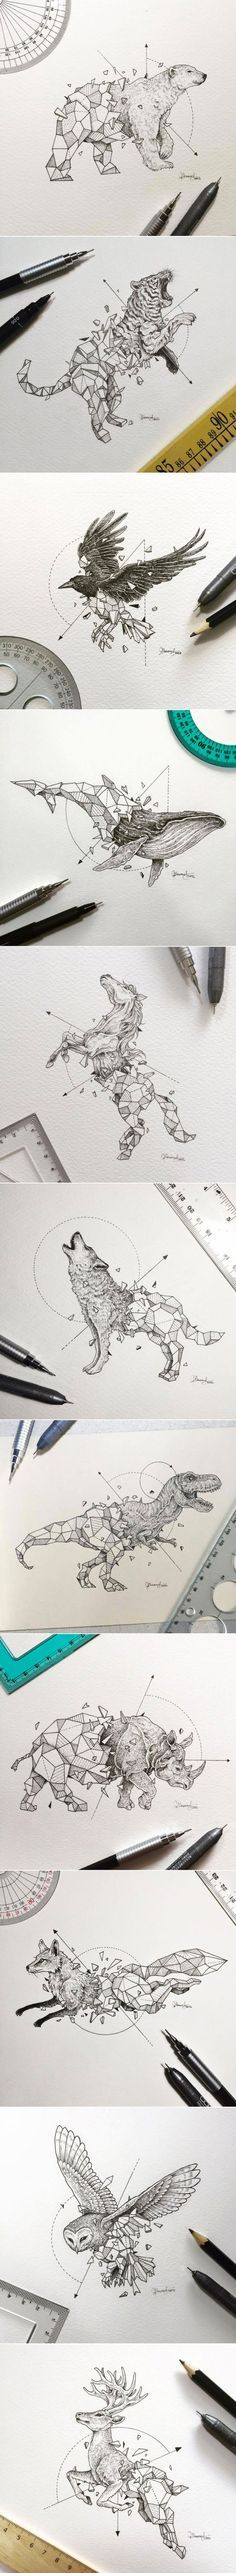 Geometric Beasts by Kerby Rosanes